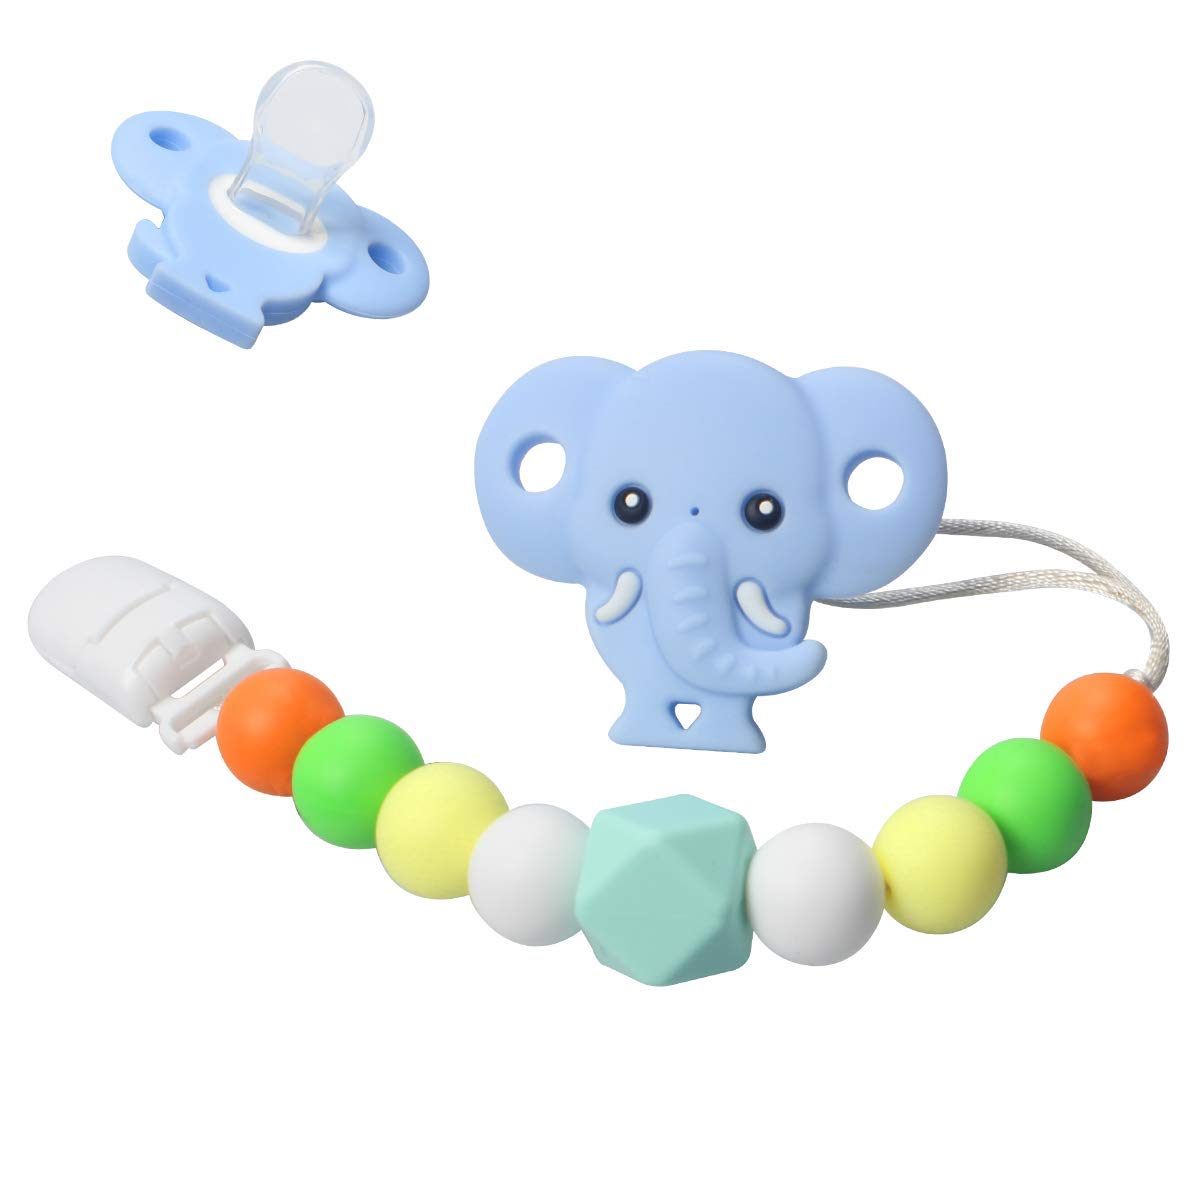 OUENUAH Baby Pacifier Clip - 3 in 1 - Silicone Teething Beads + Elephant Teether Toys + Pacifier - Soother Chain and Universal Pacifier Holder Set, BPA Free Food Grade Binky Holder for Babies Toddlers